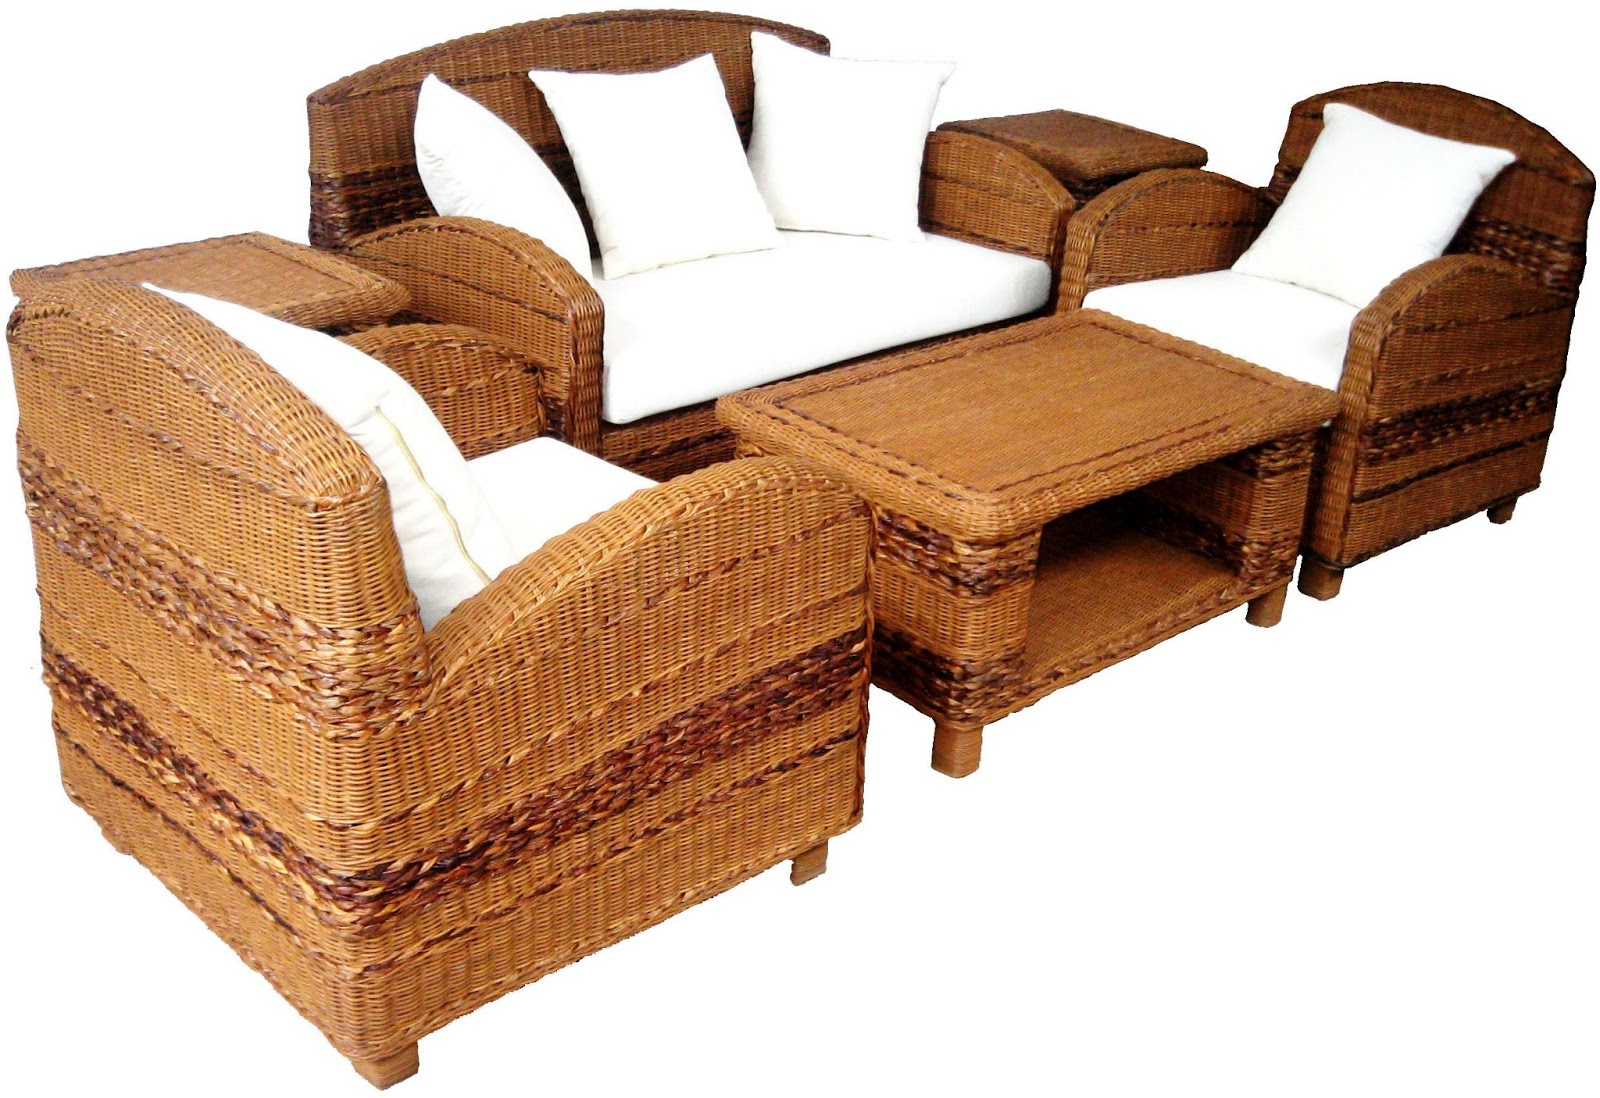 Furniture philippines Home furniture online philippines